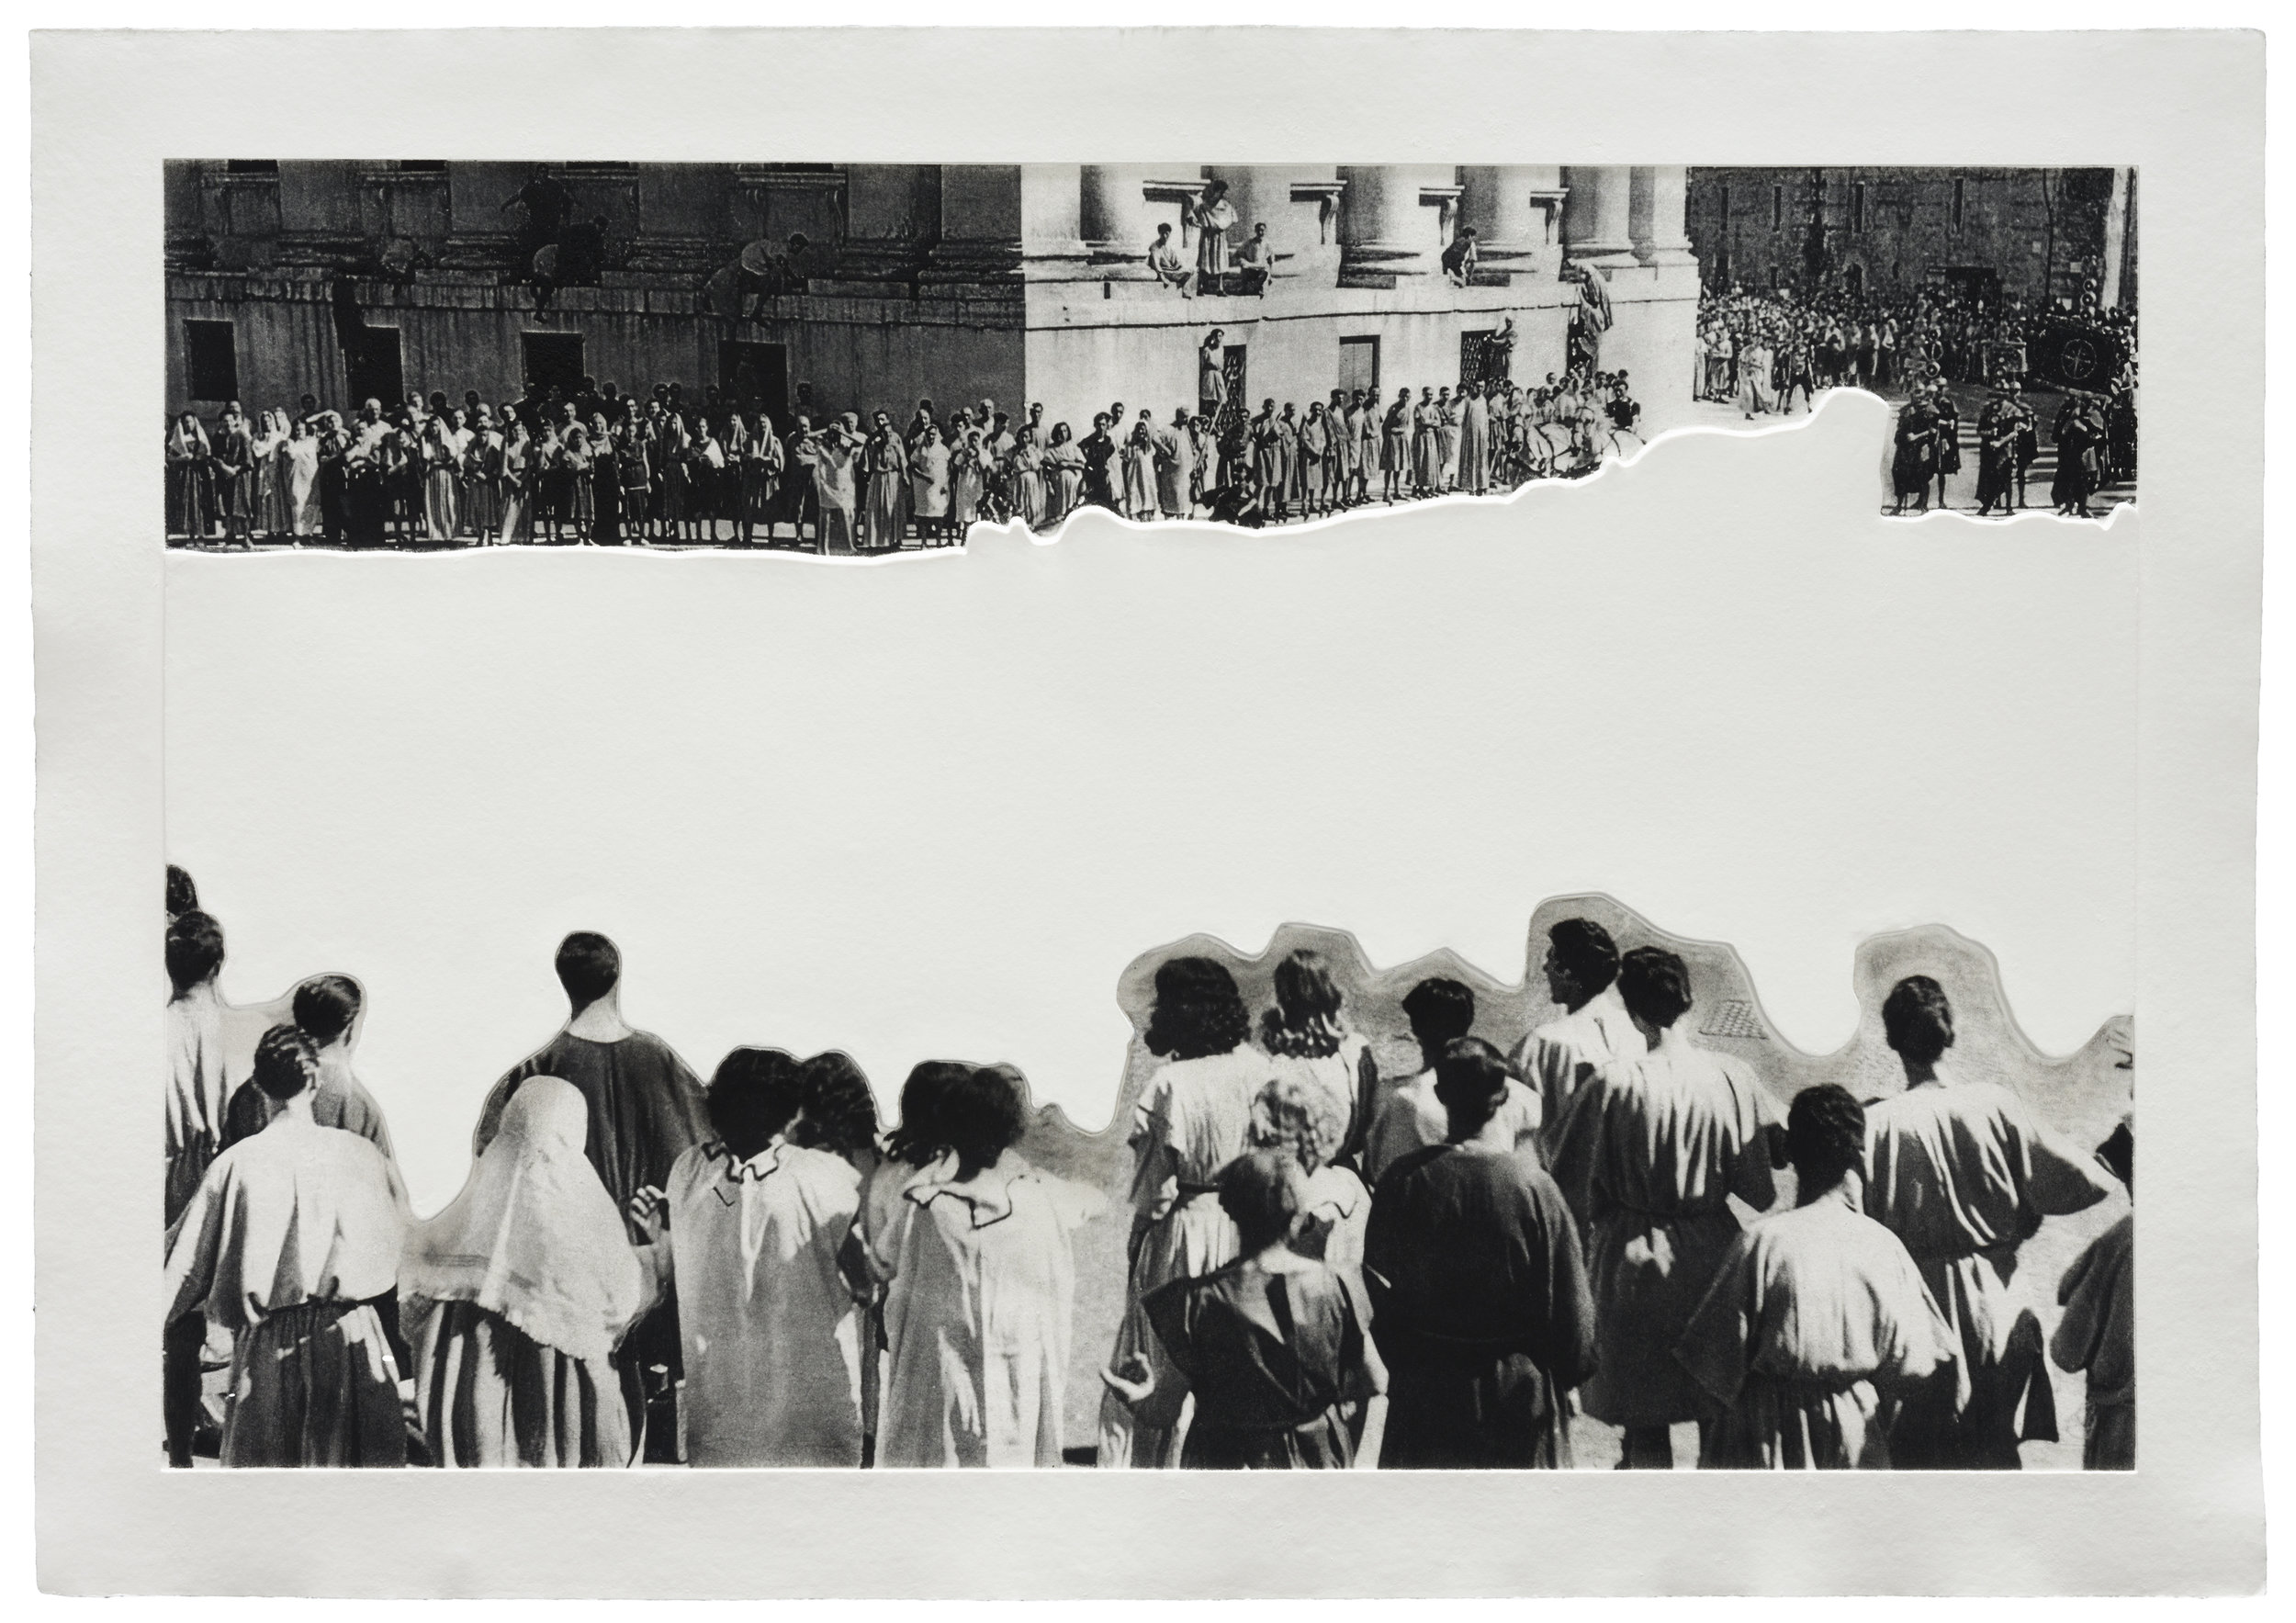 © John Baldessari  Crowds with Shape of Reason Missing: Example 4 , 2012. Mixografía® print on handmade paper, Edition of 60, 30 X 43.5 inches